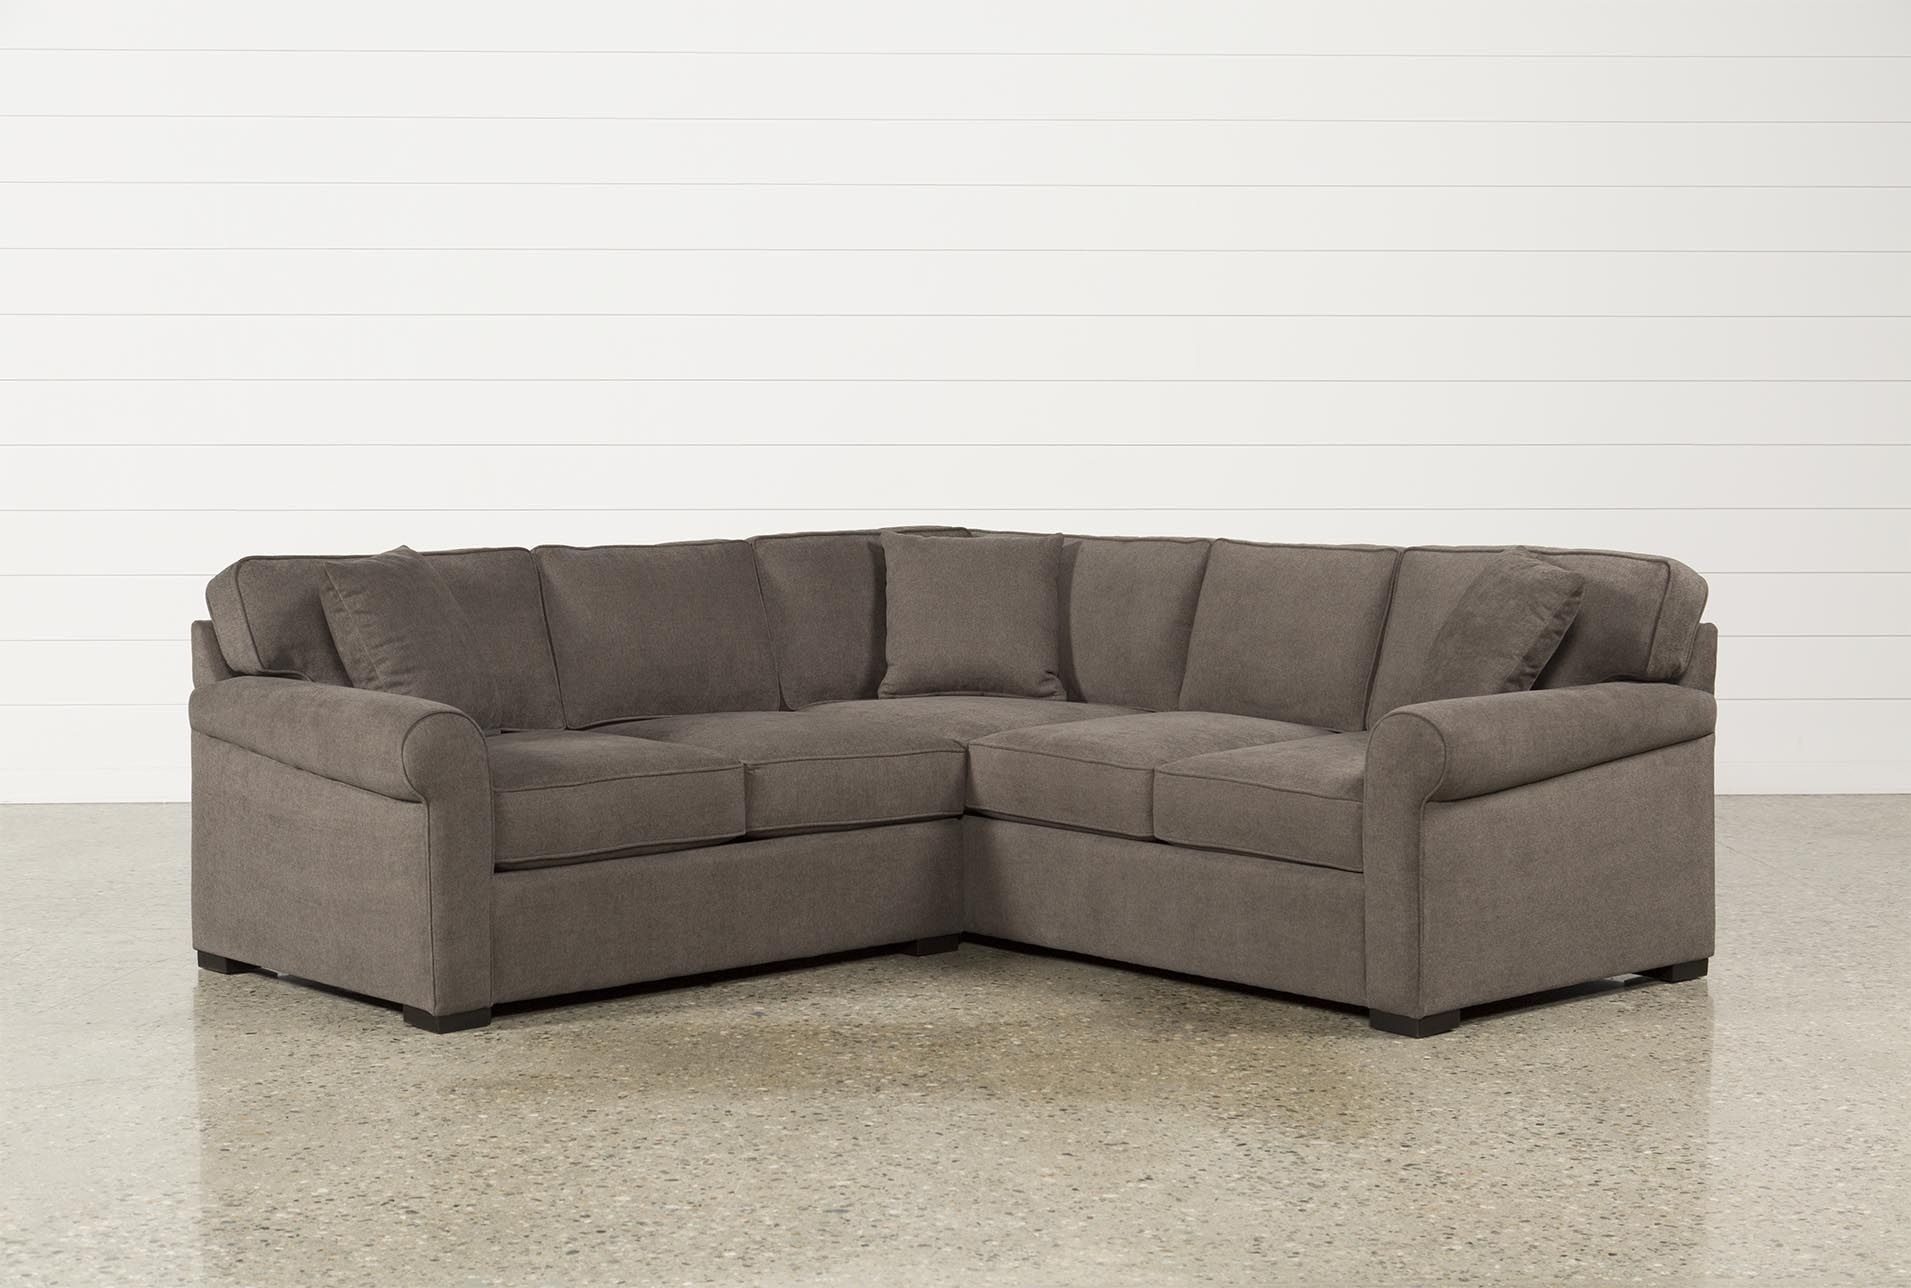 Elm Grande 2 Piece Sectional With Regard To Turdur 2 Piece Sectionals With Laf Loveseat (Photo 7 of 30)